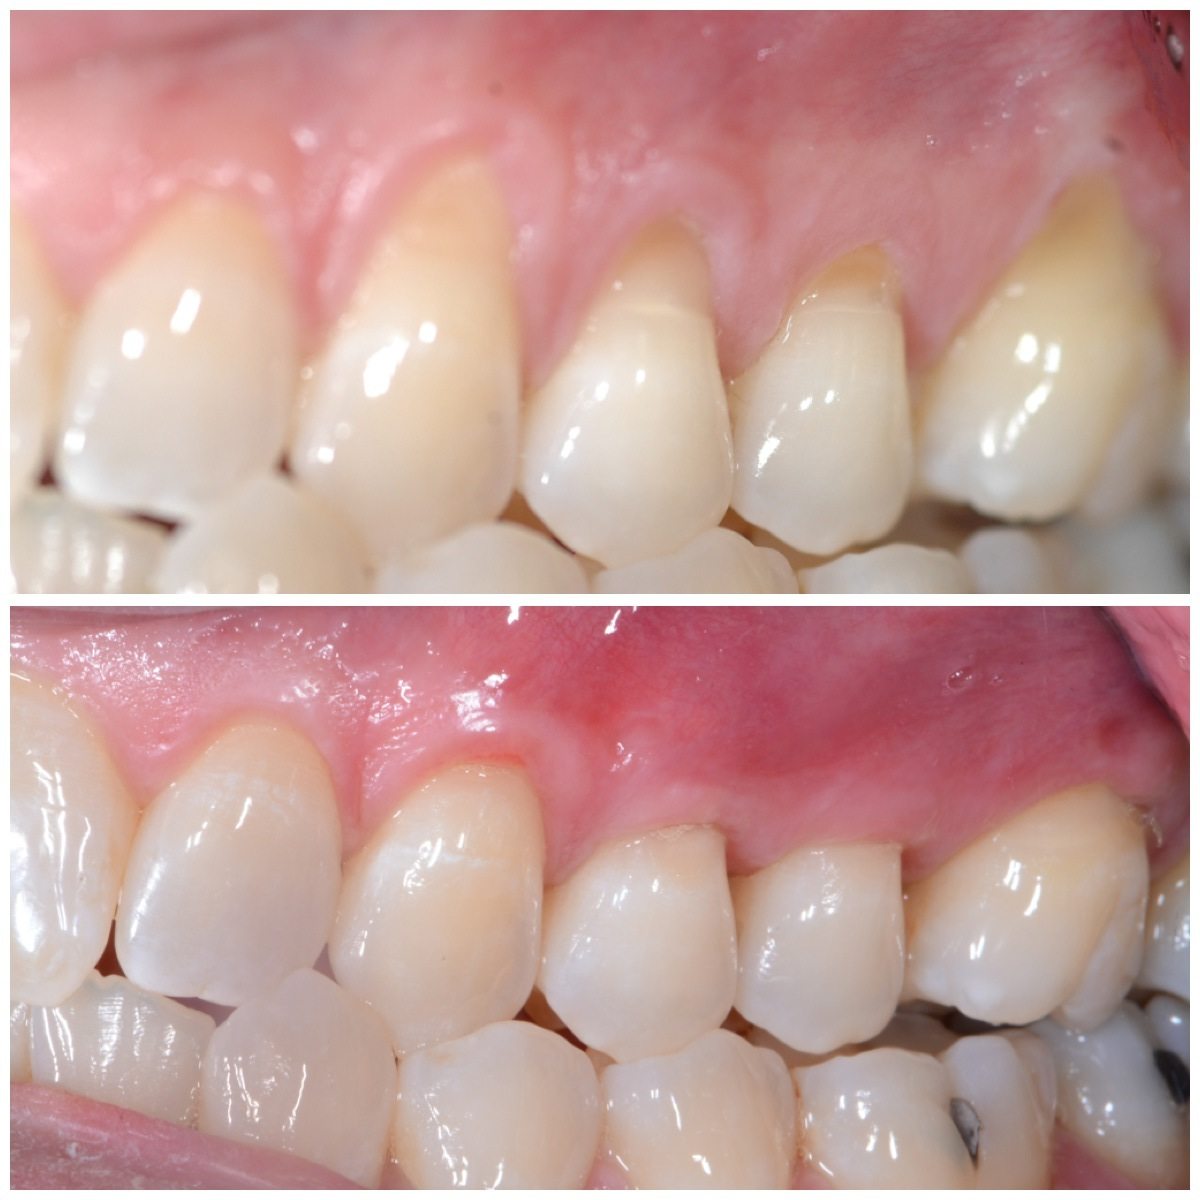 Pinhole Gum Rejuvenation - Before and After Procedure performed by demė's Dr. Thomas George at demė